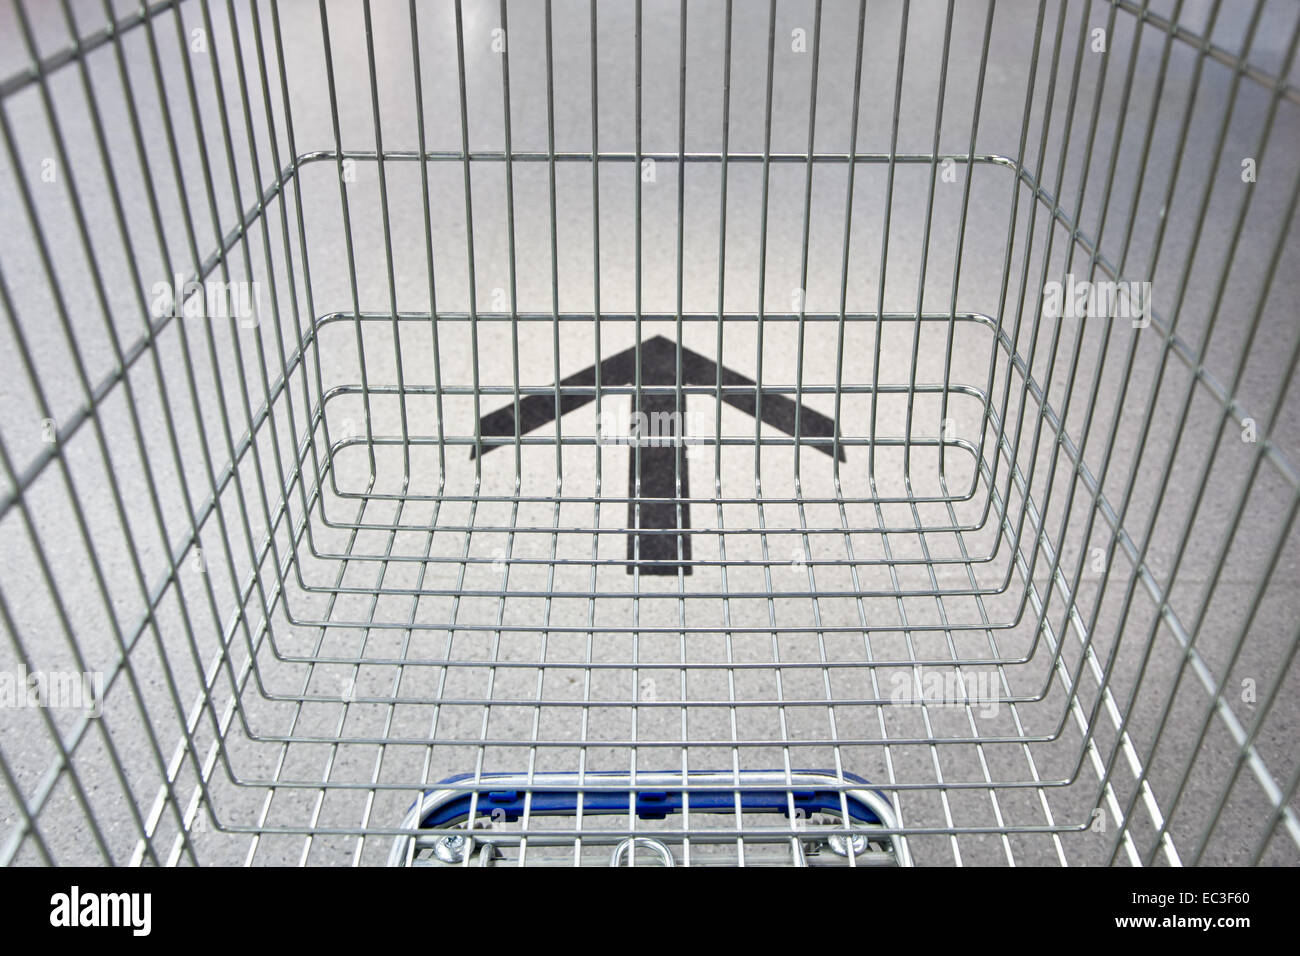 Shopping cart moving along the market trail. - Stock Image